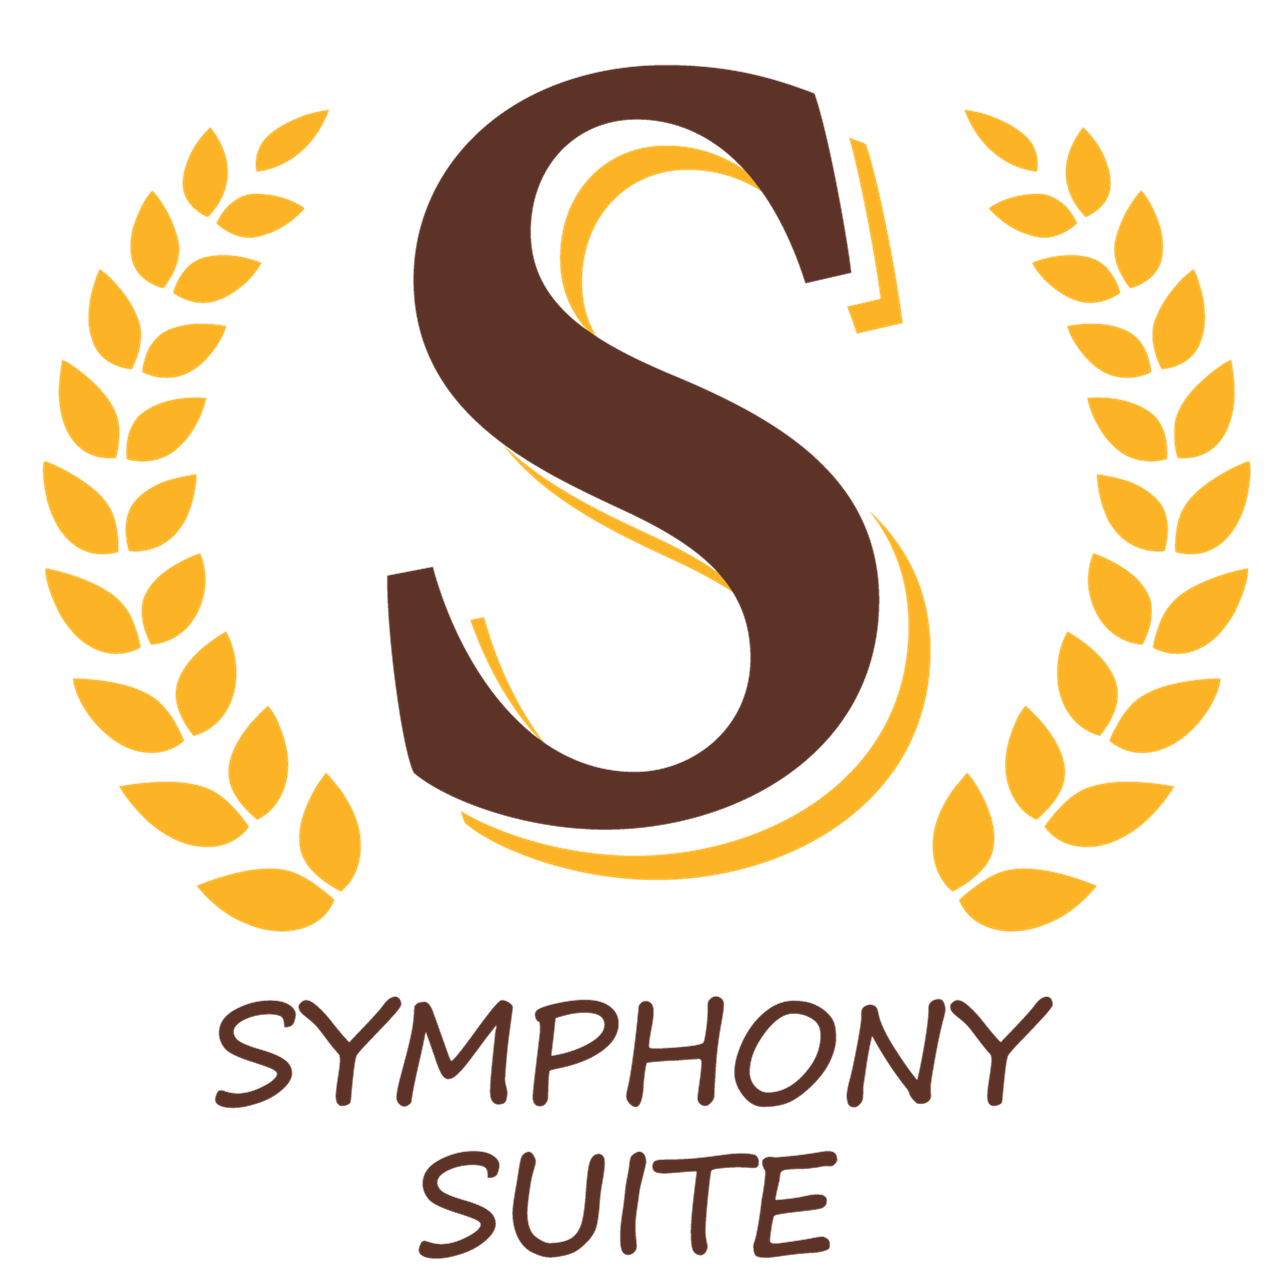 Symphony Suite by SC Empire